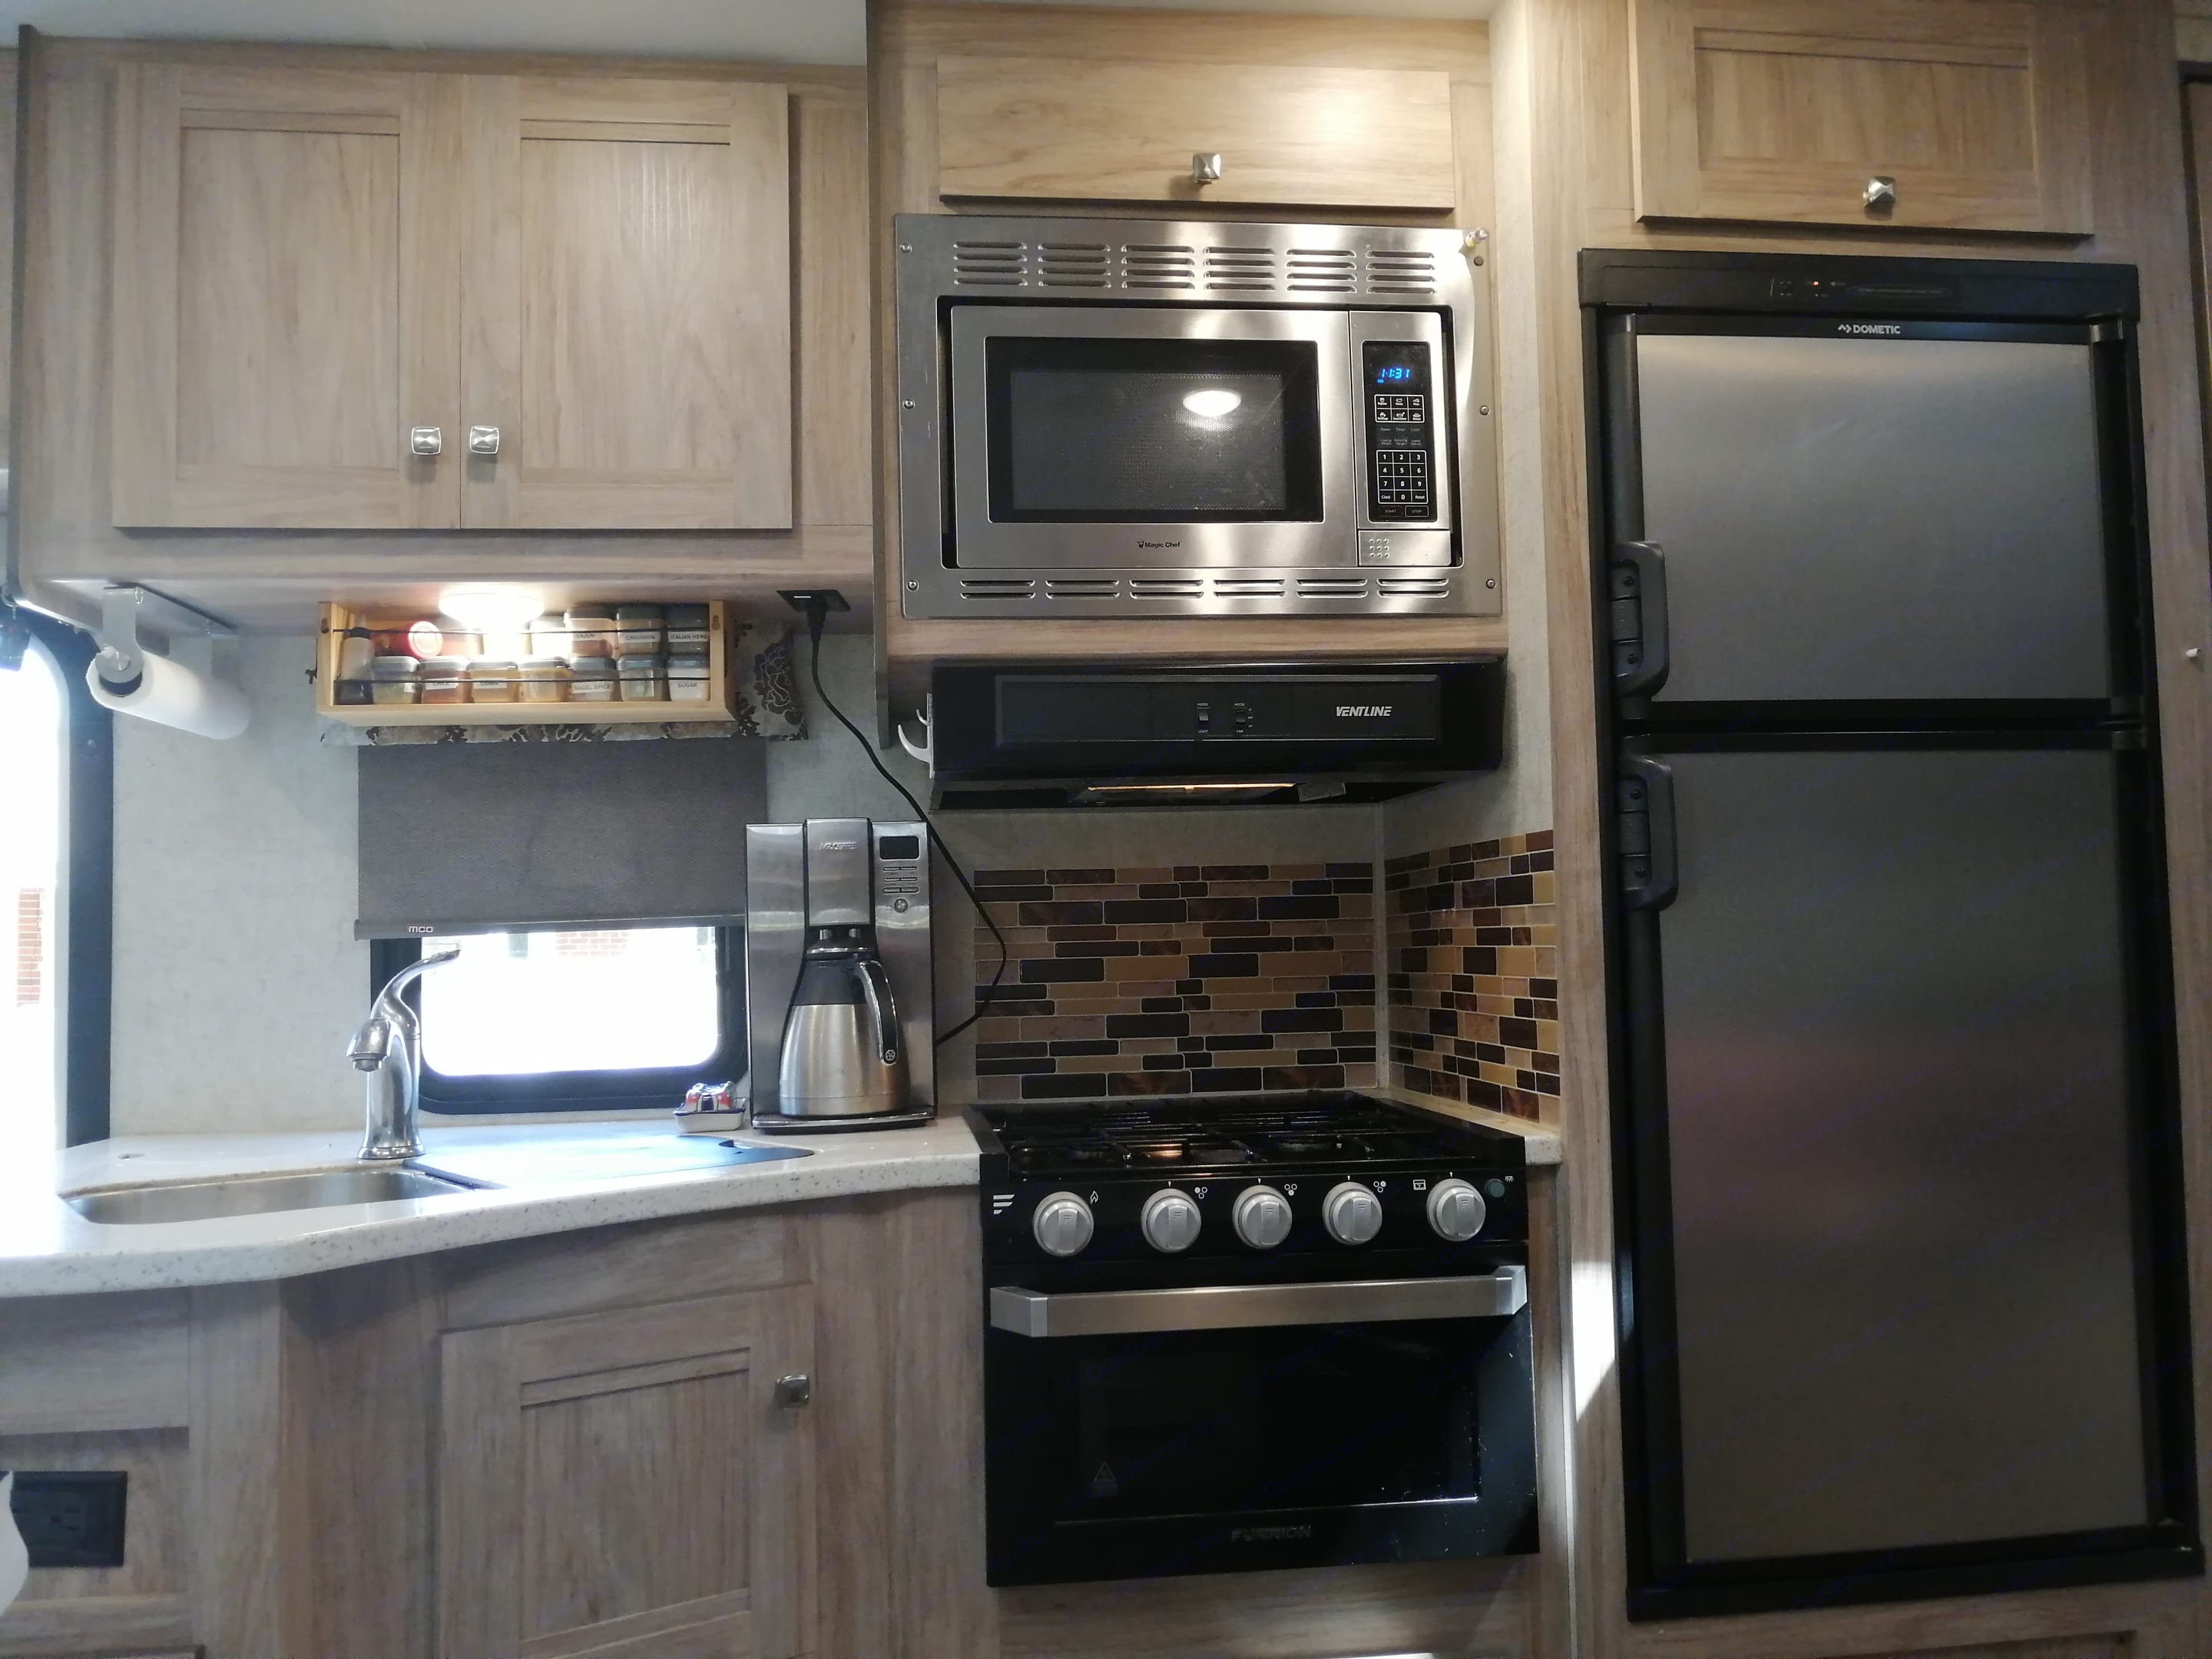 3 burner propane stove and propane oven. Lots of kitchen storage. . Forest River Forester 2020